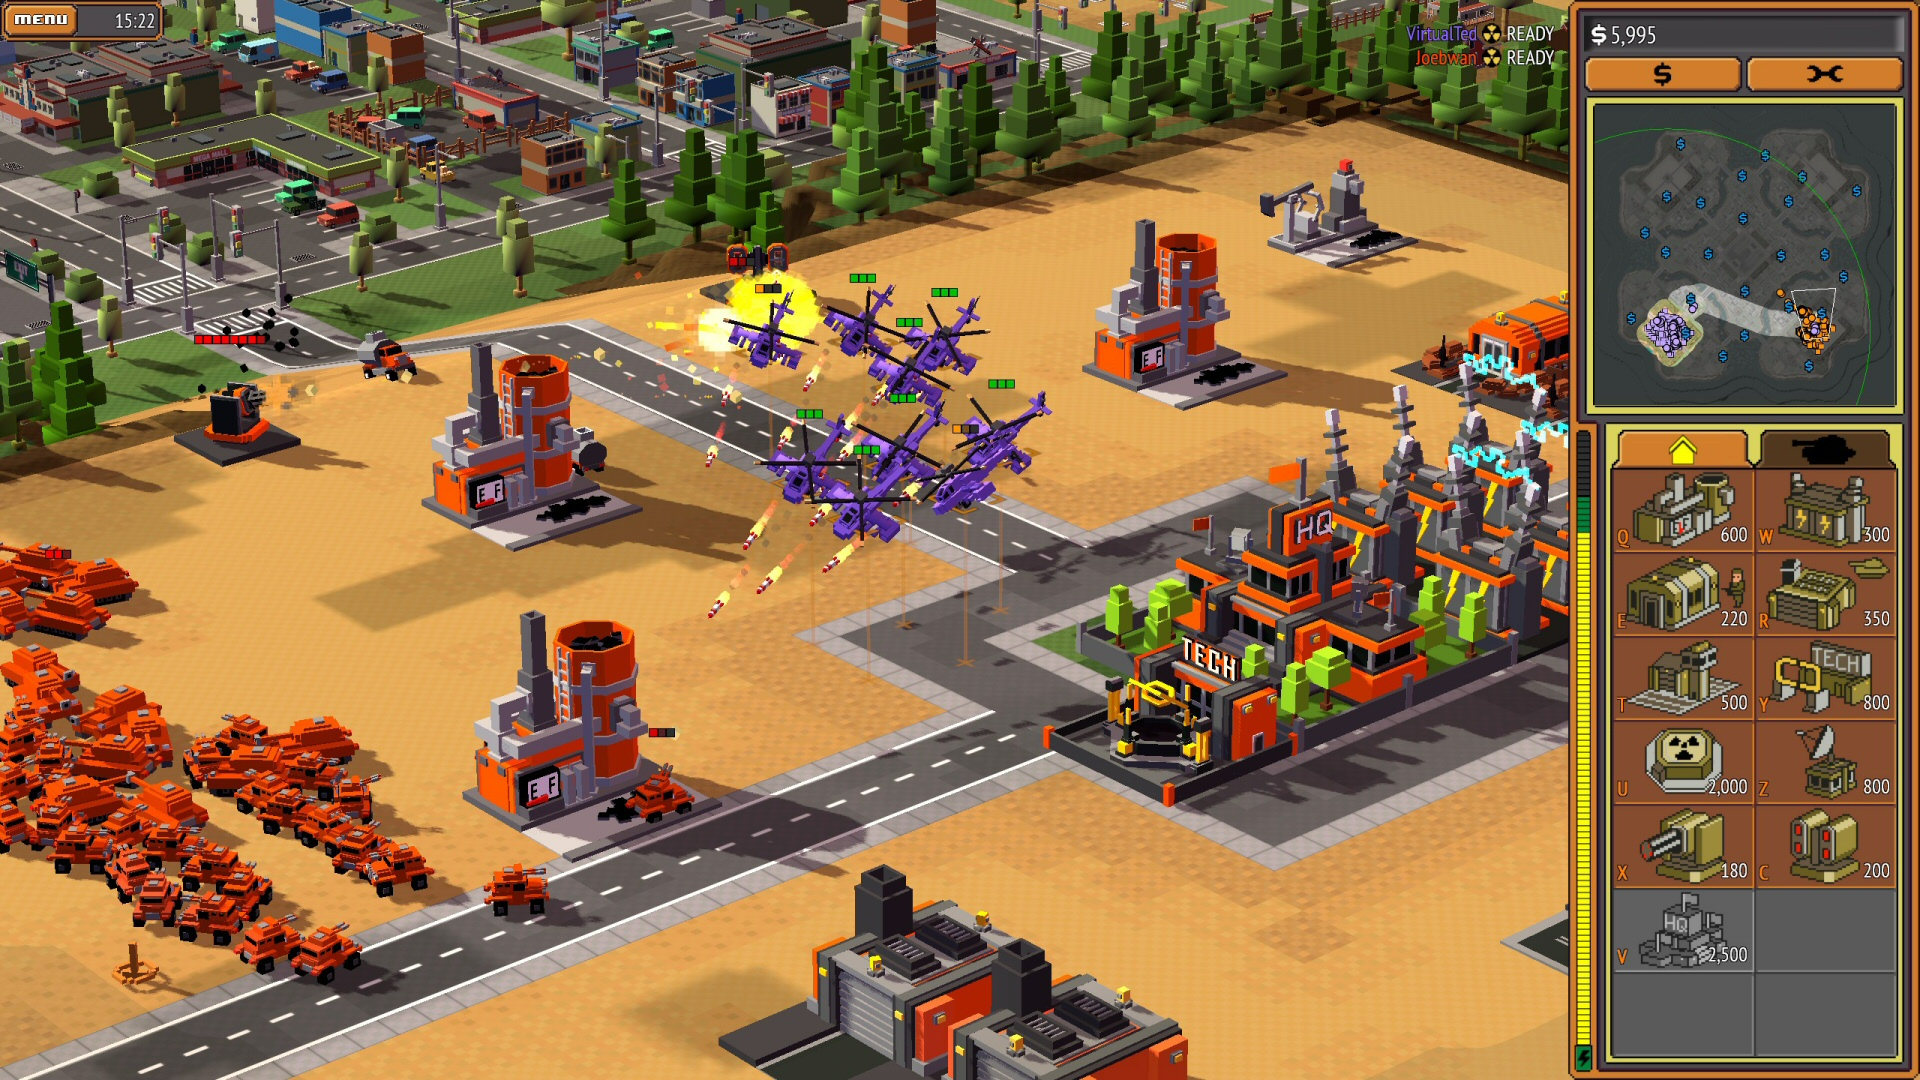 8-Bit Armies (Game Screenshot)